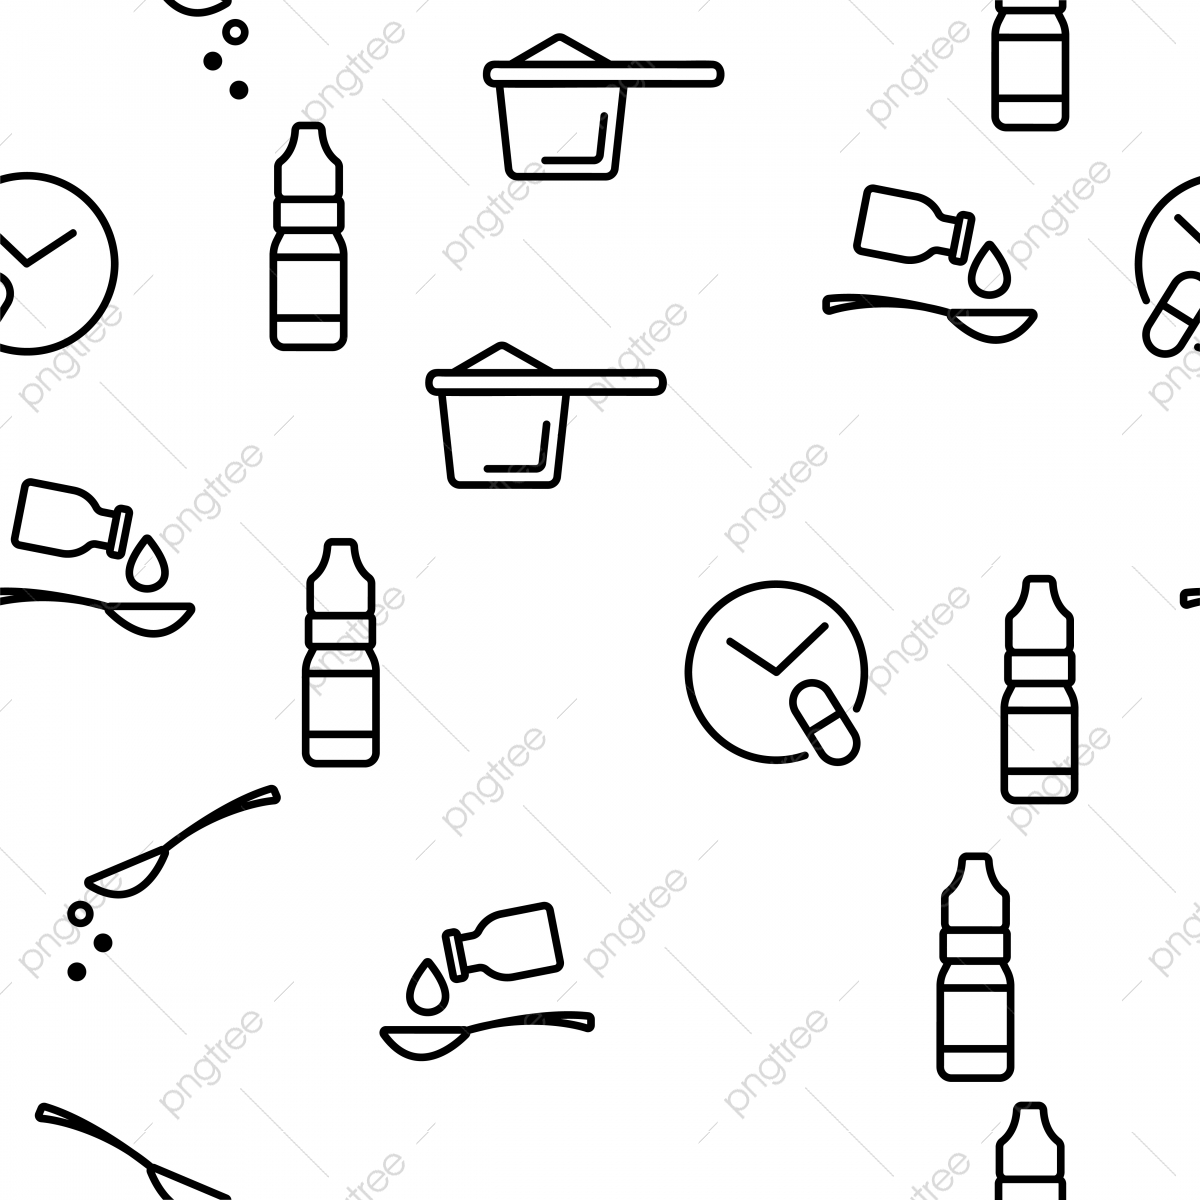 drugs vector png free drug cartoon drugs drug vector vector images pngtree https pngtree com freepng dosage dosing drugs vector seamless pattern 5242274 html